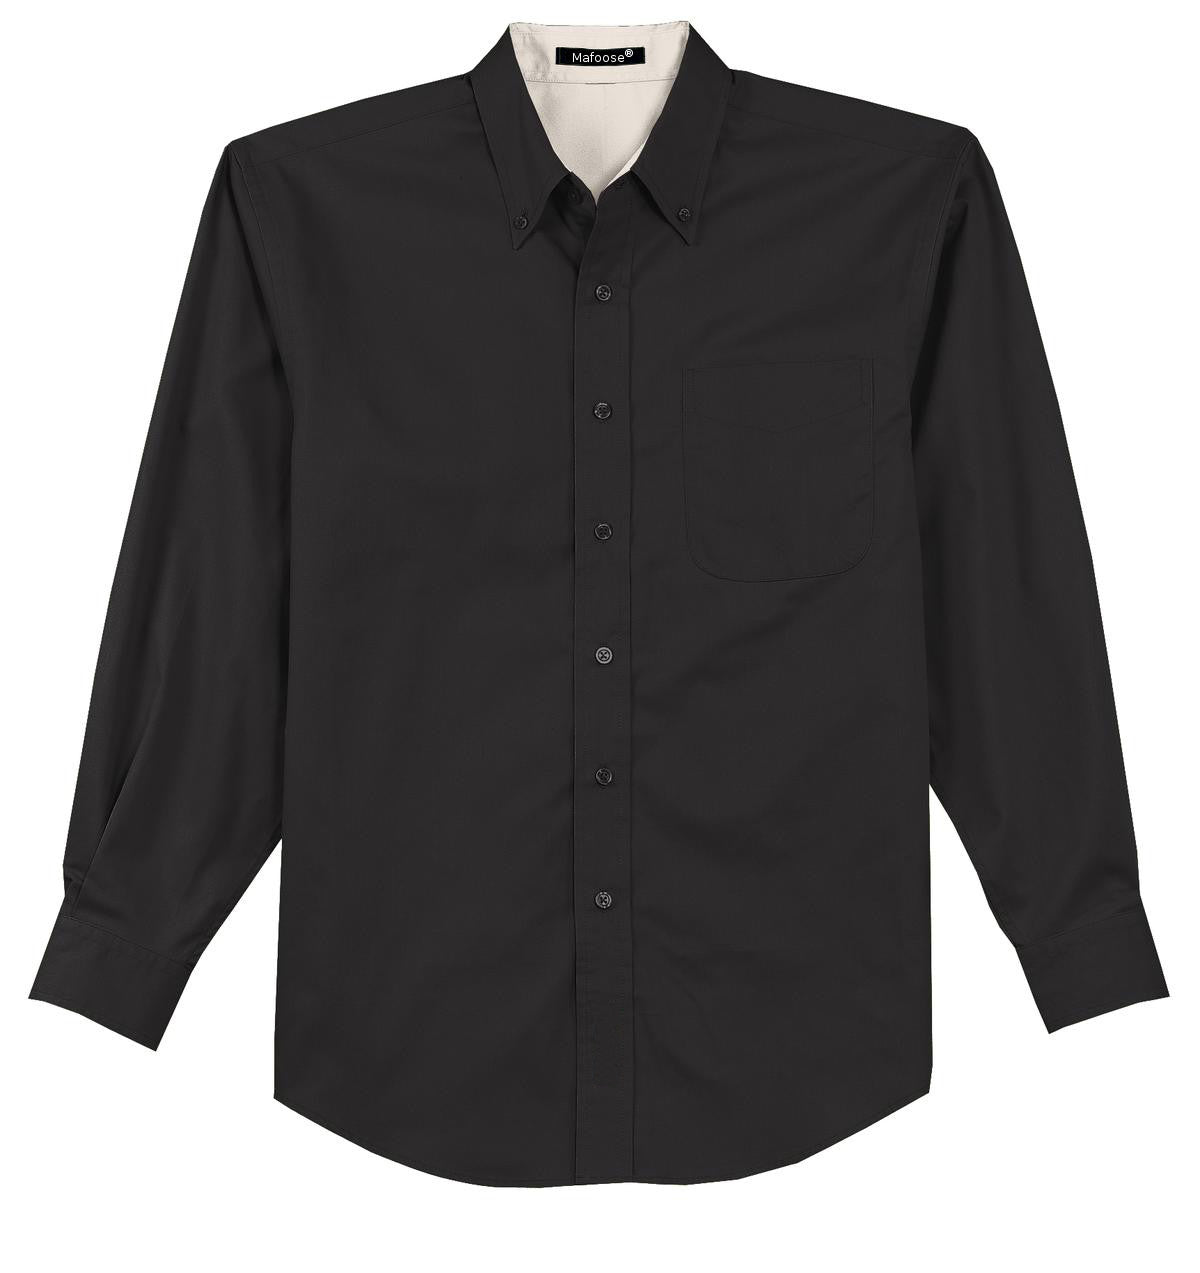 Mafoose Men's Tall Long Sleeve Easy Care Shirt Black/ Light Stone-Front